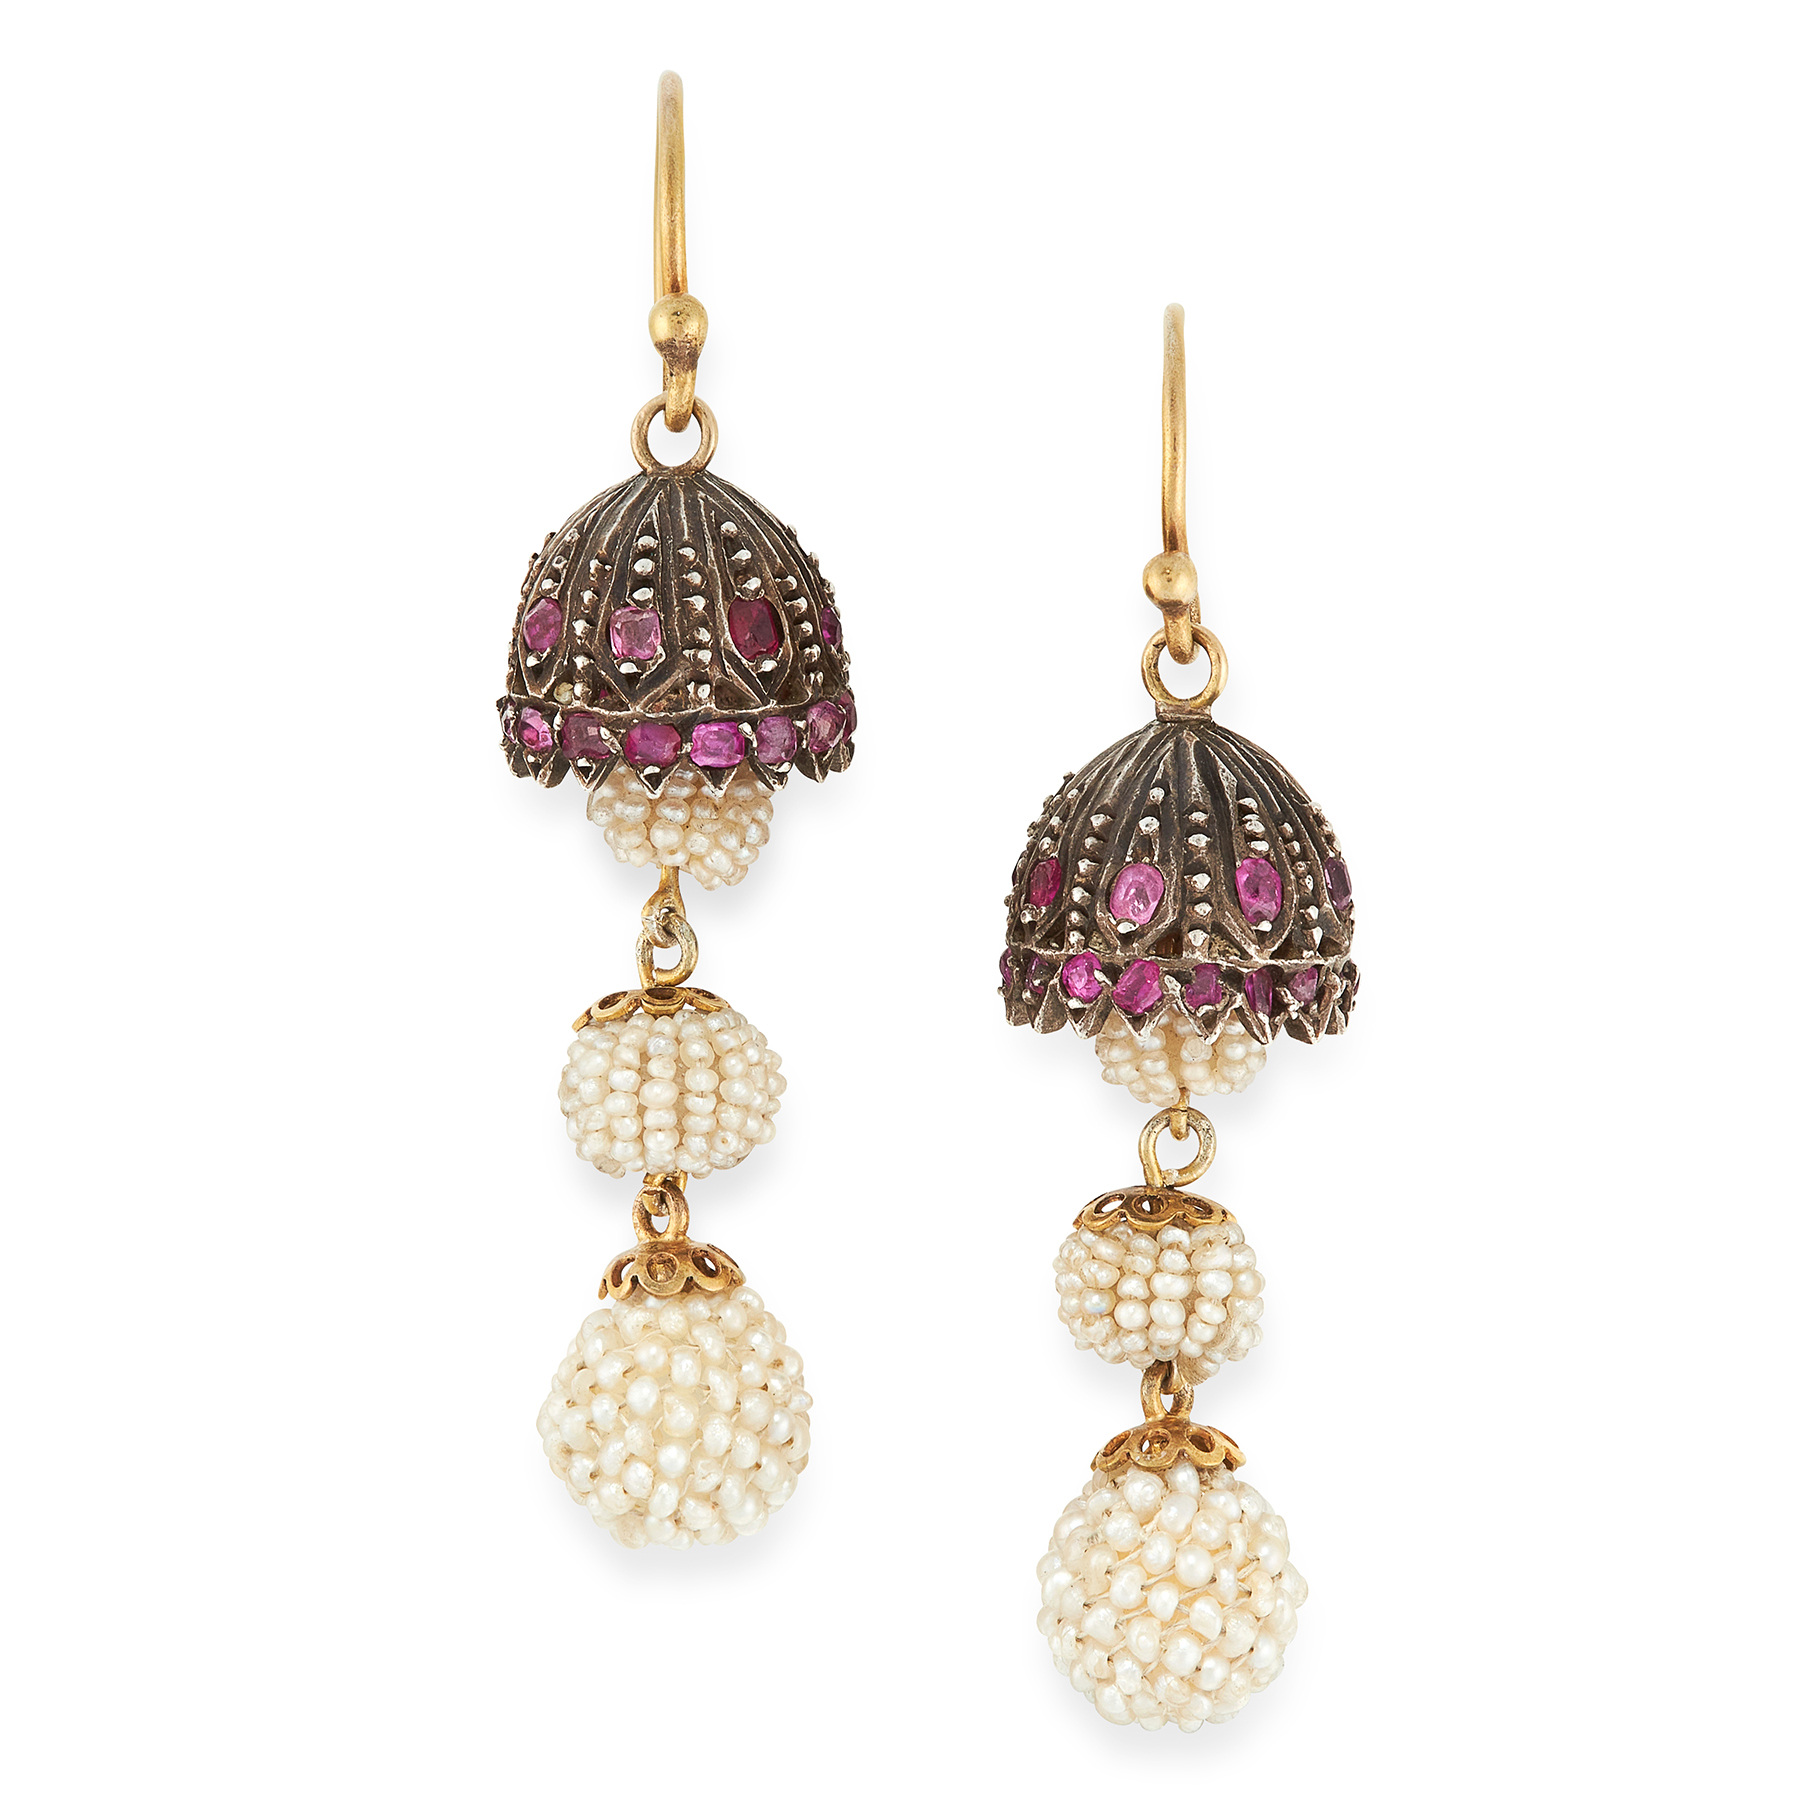 A PAIR OF RUBY AND SEED PEARL EARRINGS in yellow gold and silver, the lamp shade design set with